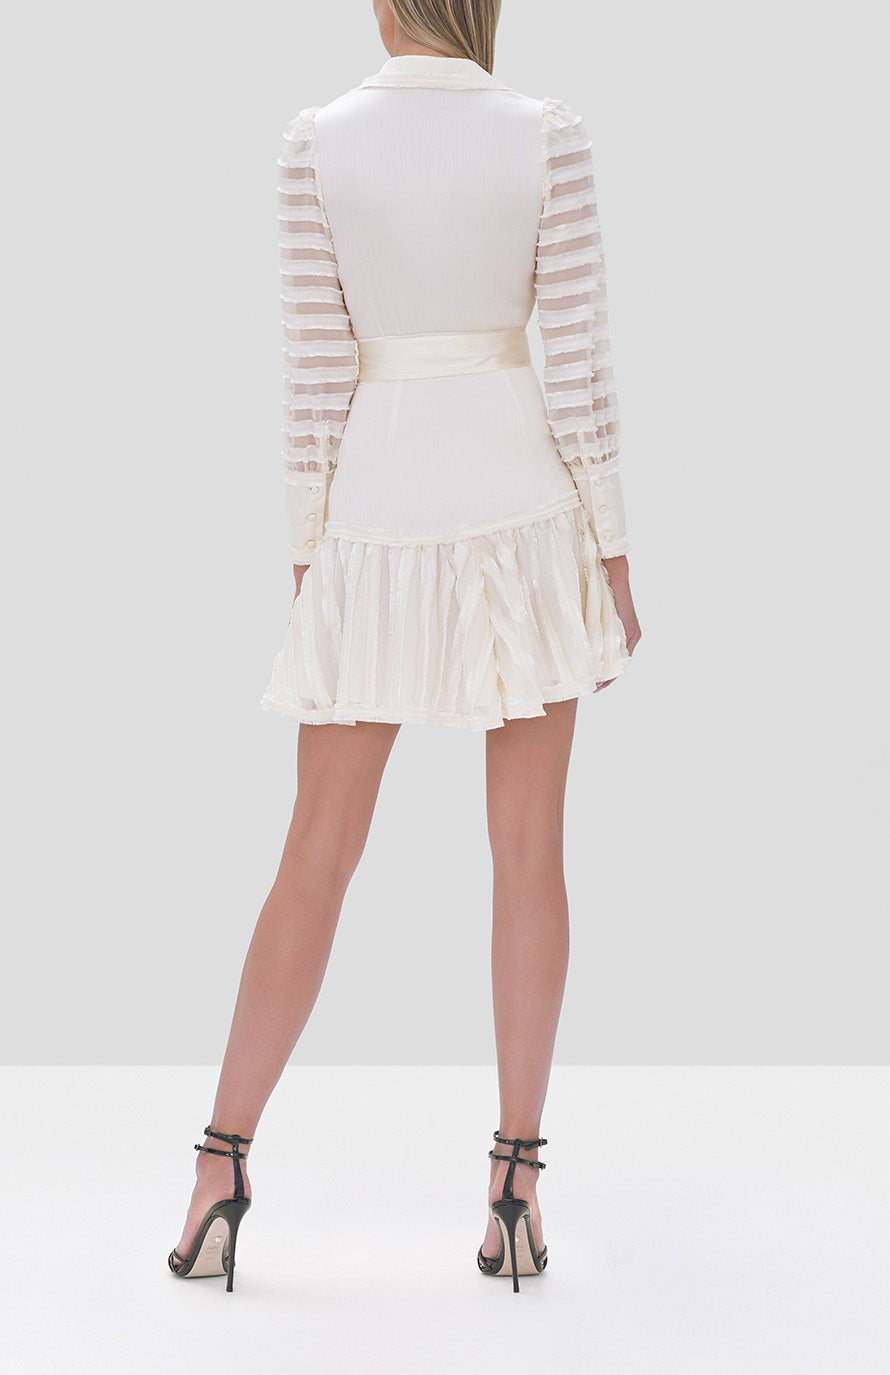 Alexis Renita Dress in Off White from the Fall Winter 2019 Ready To Wear Collection - Rear View